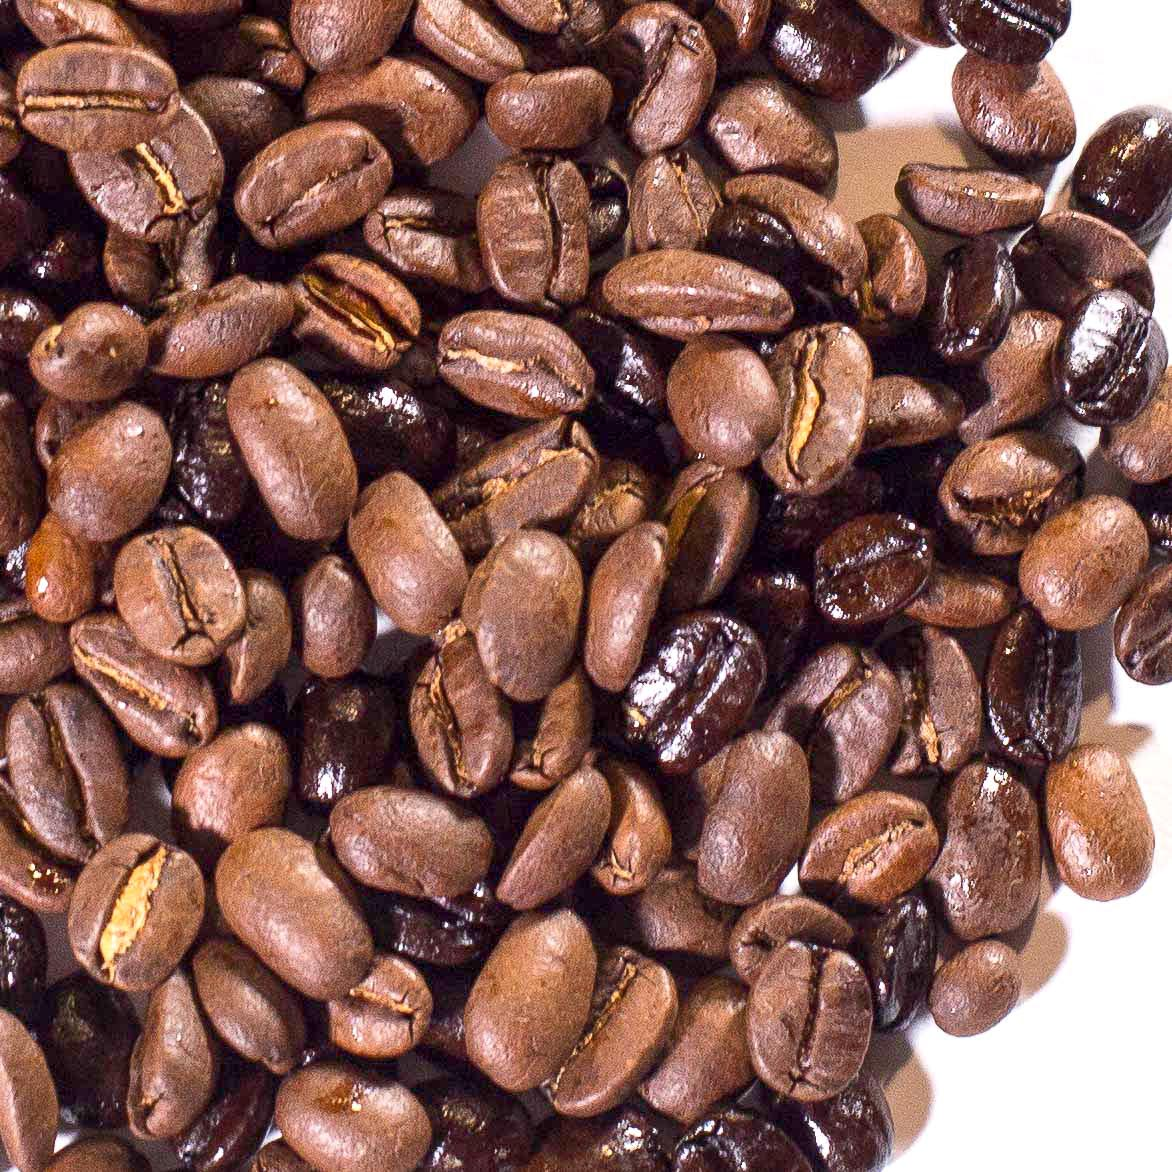 Latin-breakfast-blend-coffee-beans-friedrichs-wholesale